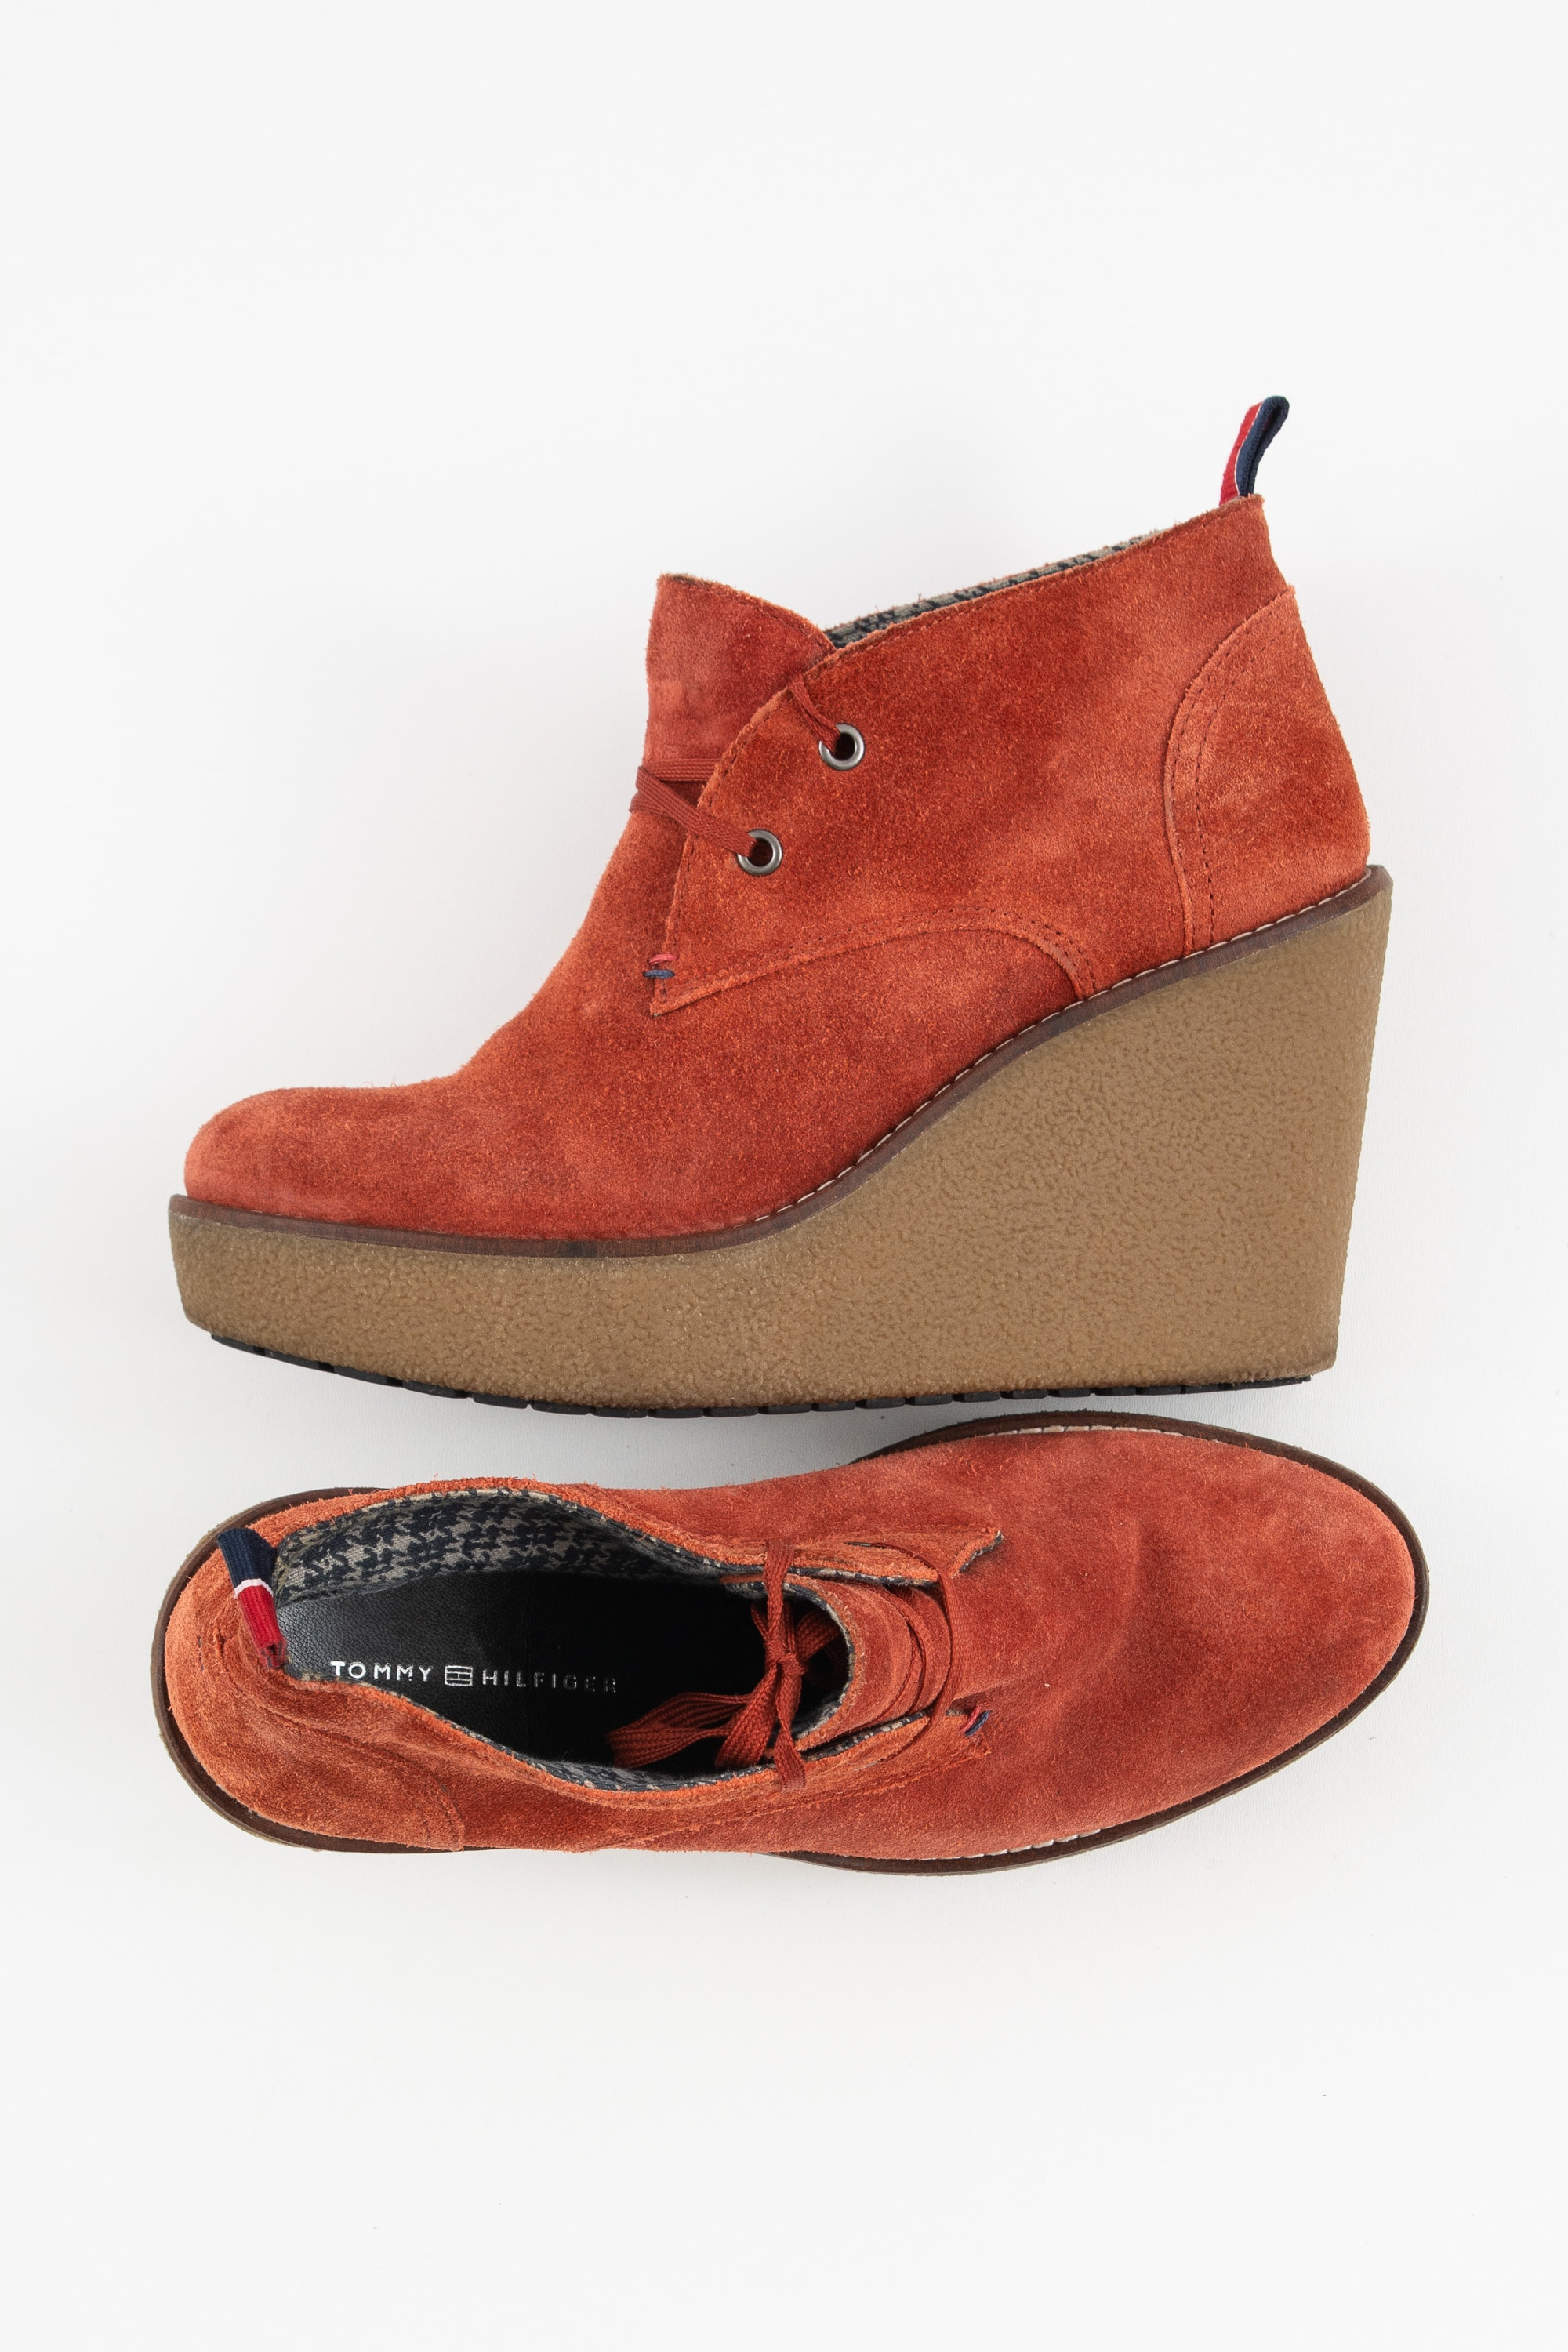 Tommy Hilfiger Stiefel / Stiefelette / Boots Rot Gr.37